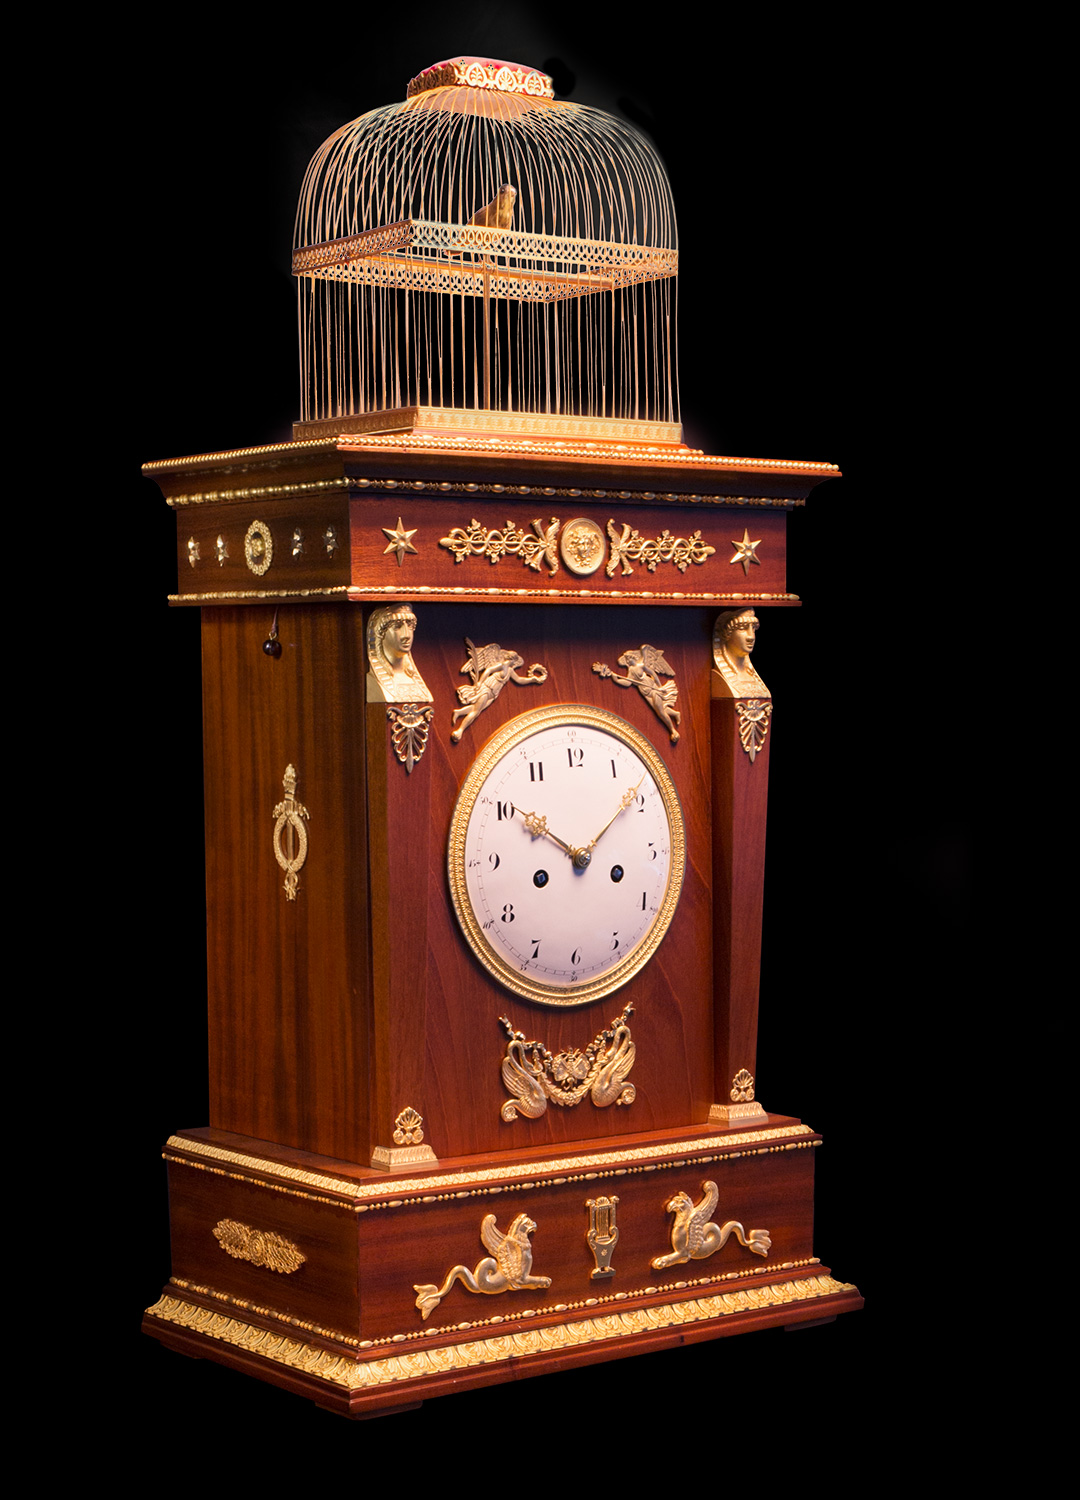 The incredible restoration of an historic Jaquet Droz clock